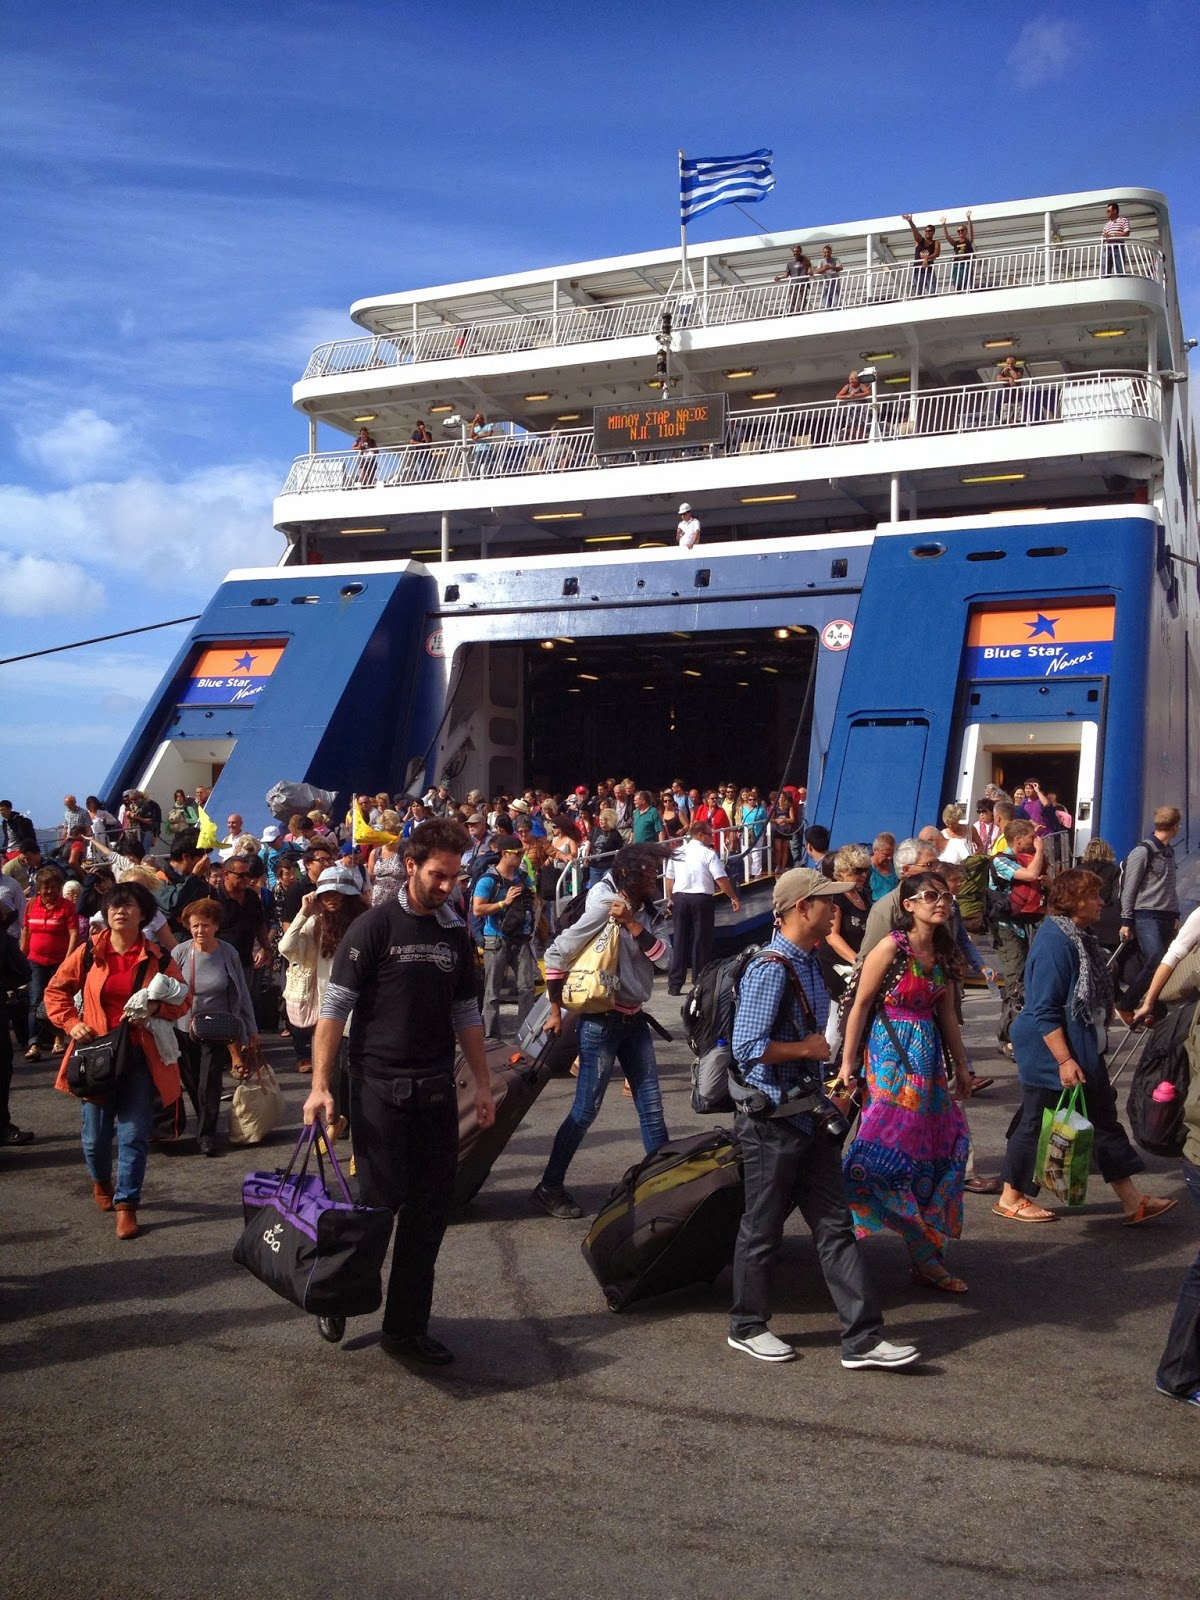 Santorini - Mass exodus off the ferry